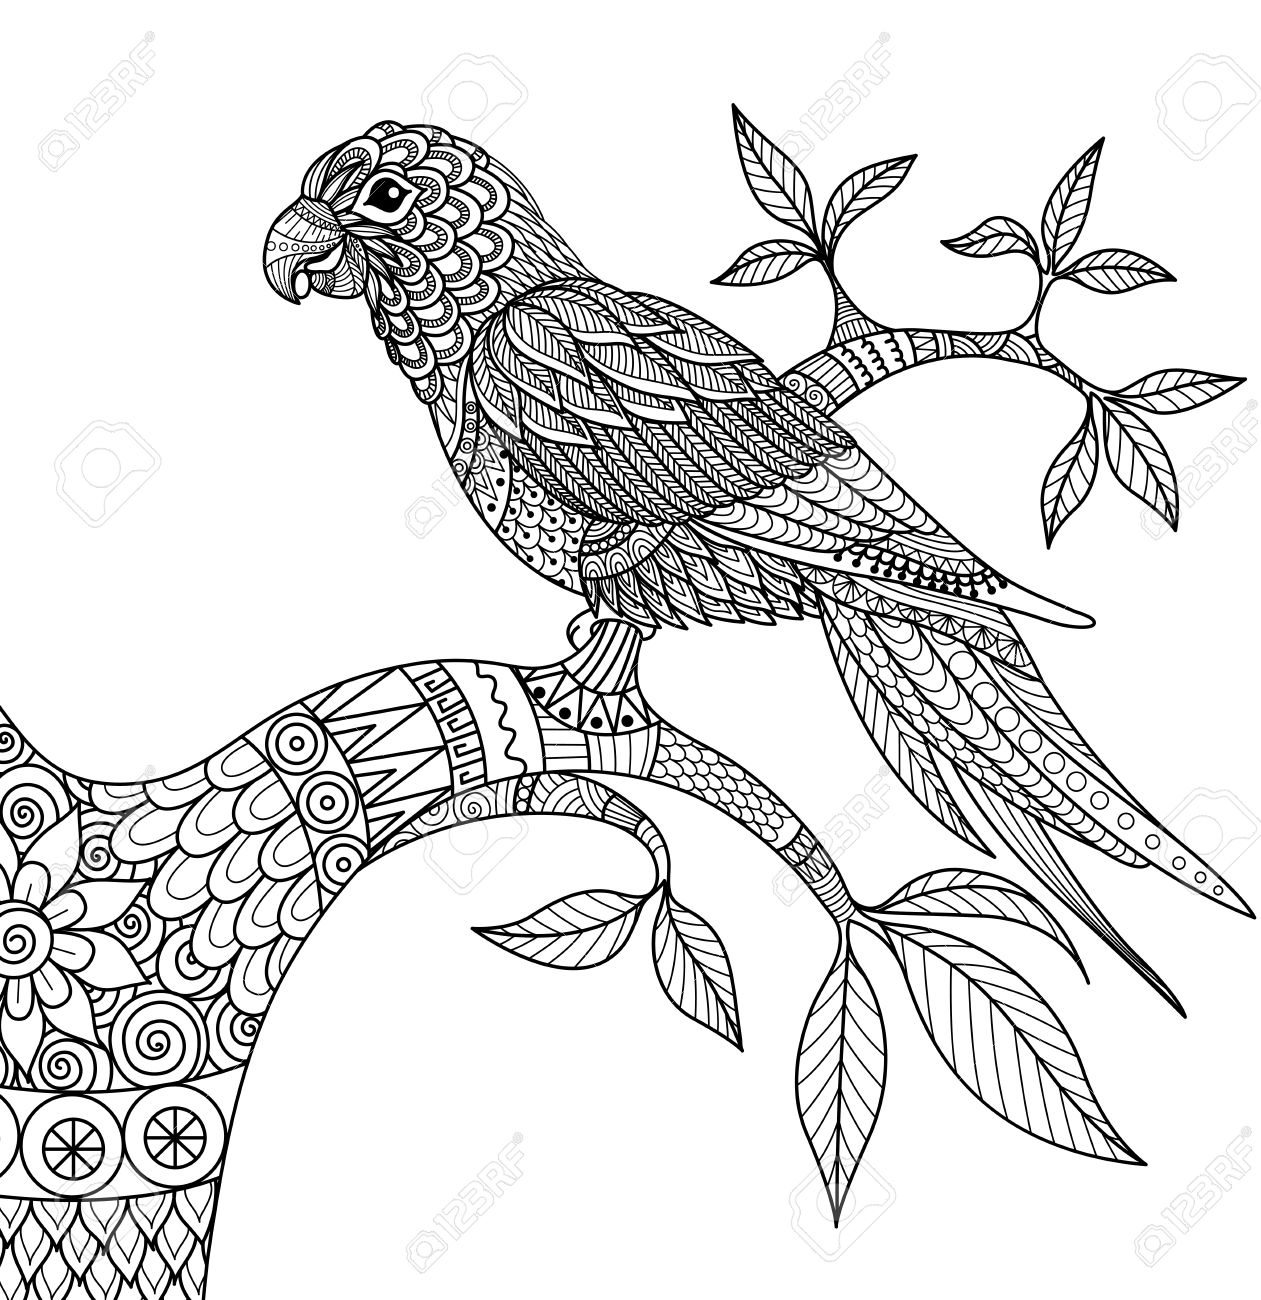 Doodle Design Of Parrot On Branch For Adult Coloring Book Royalty ...